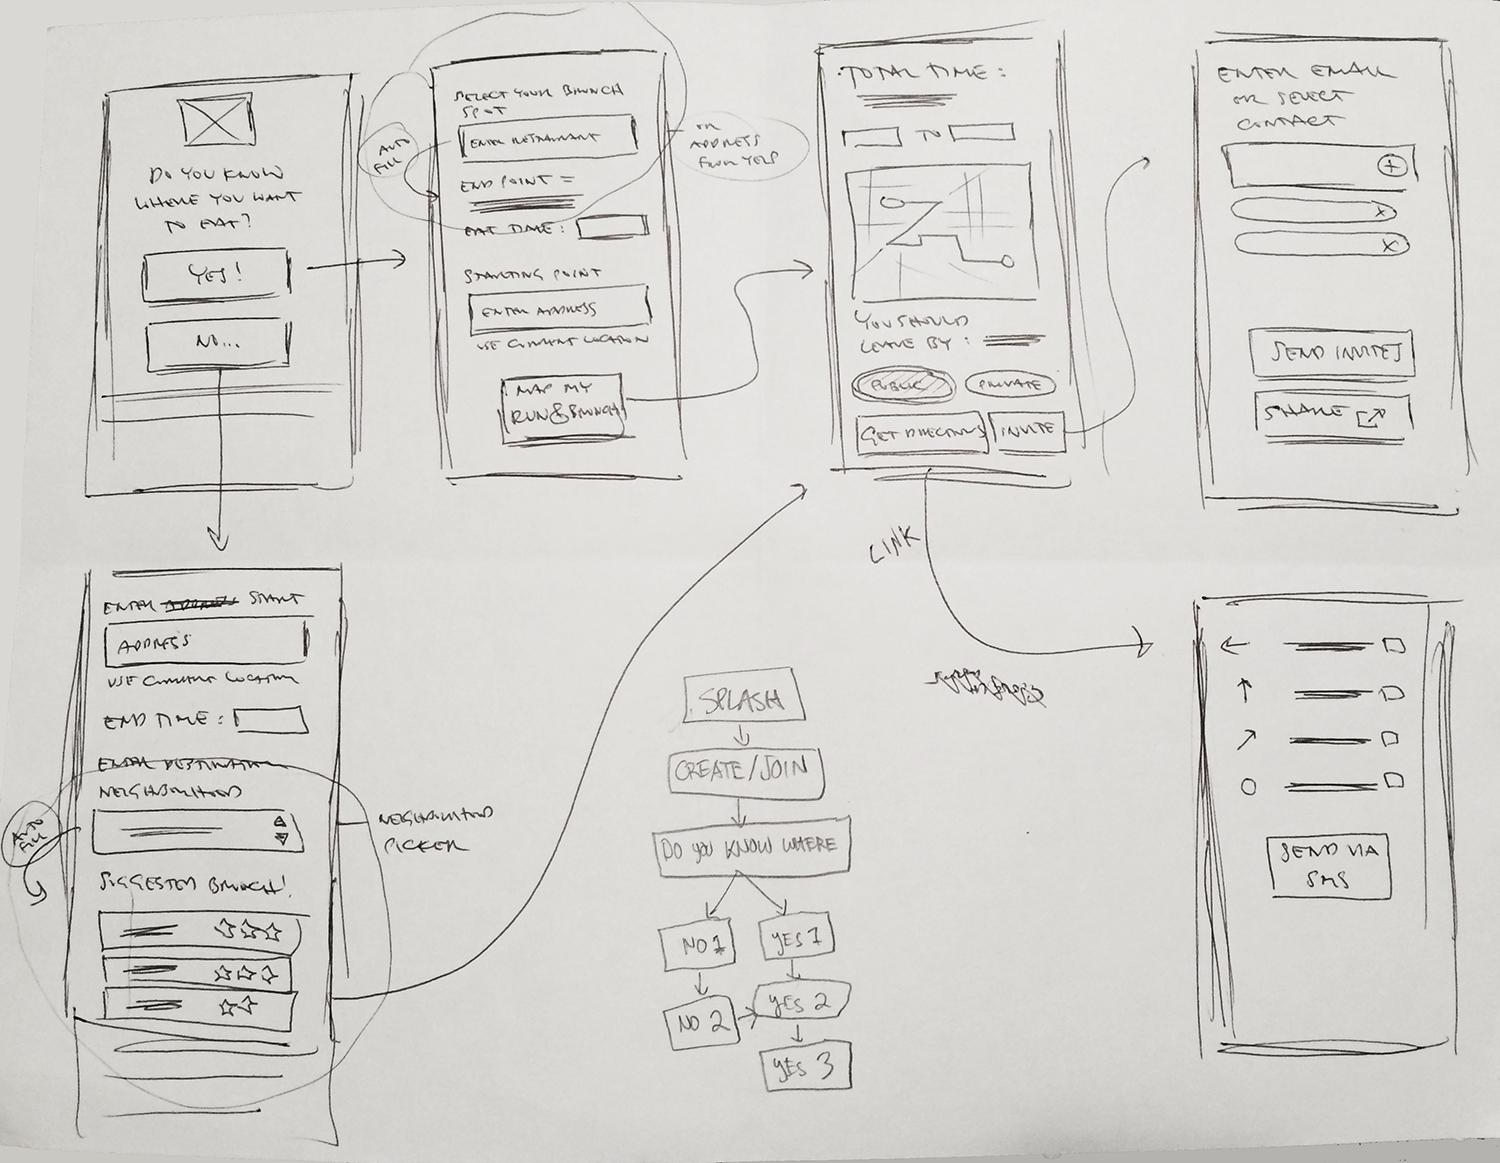 Sketches of mobile wireflows to surface the mobile elements needed.